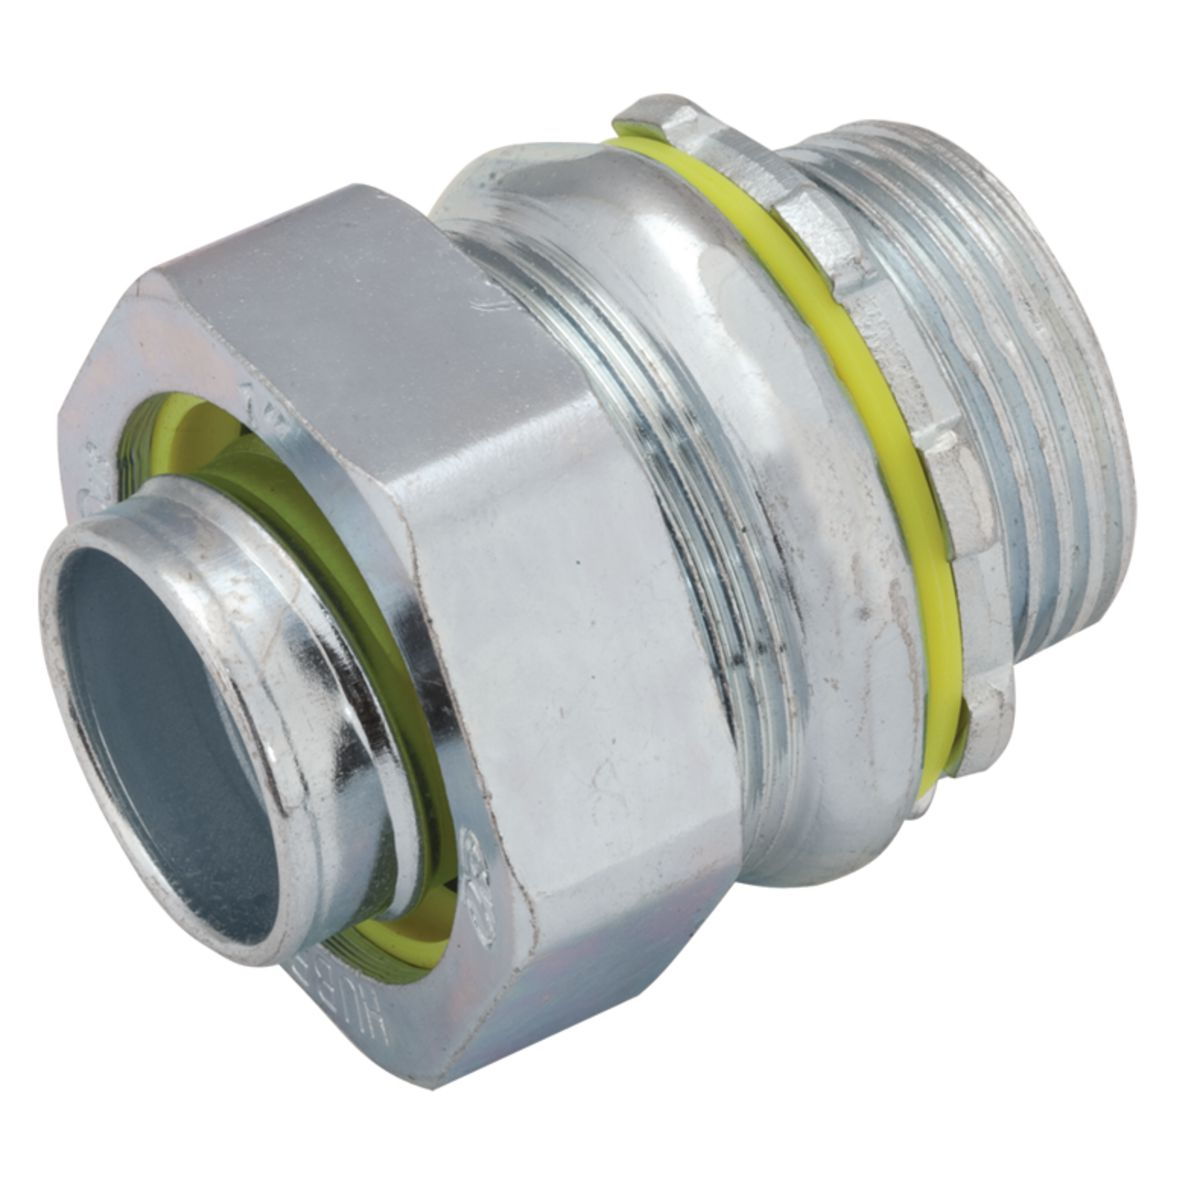 K liquidtight fittings industrial location